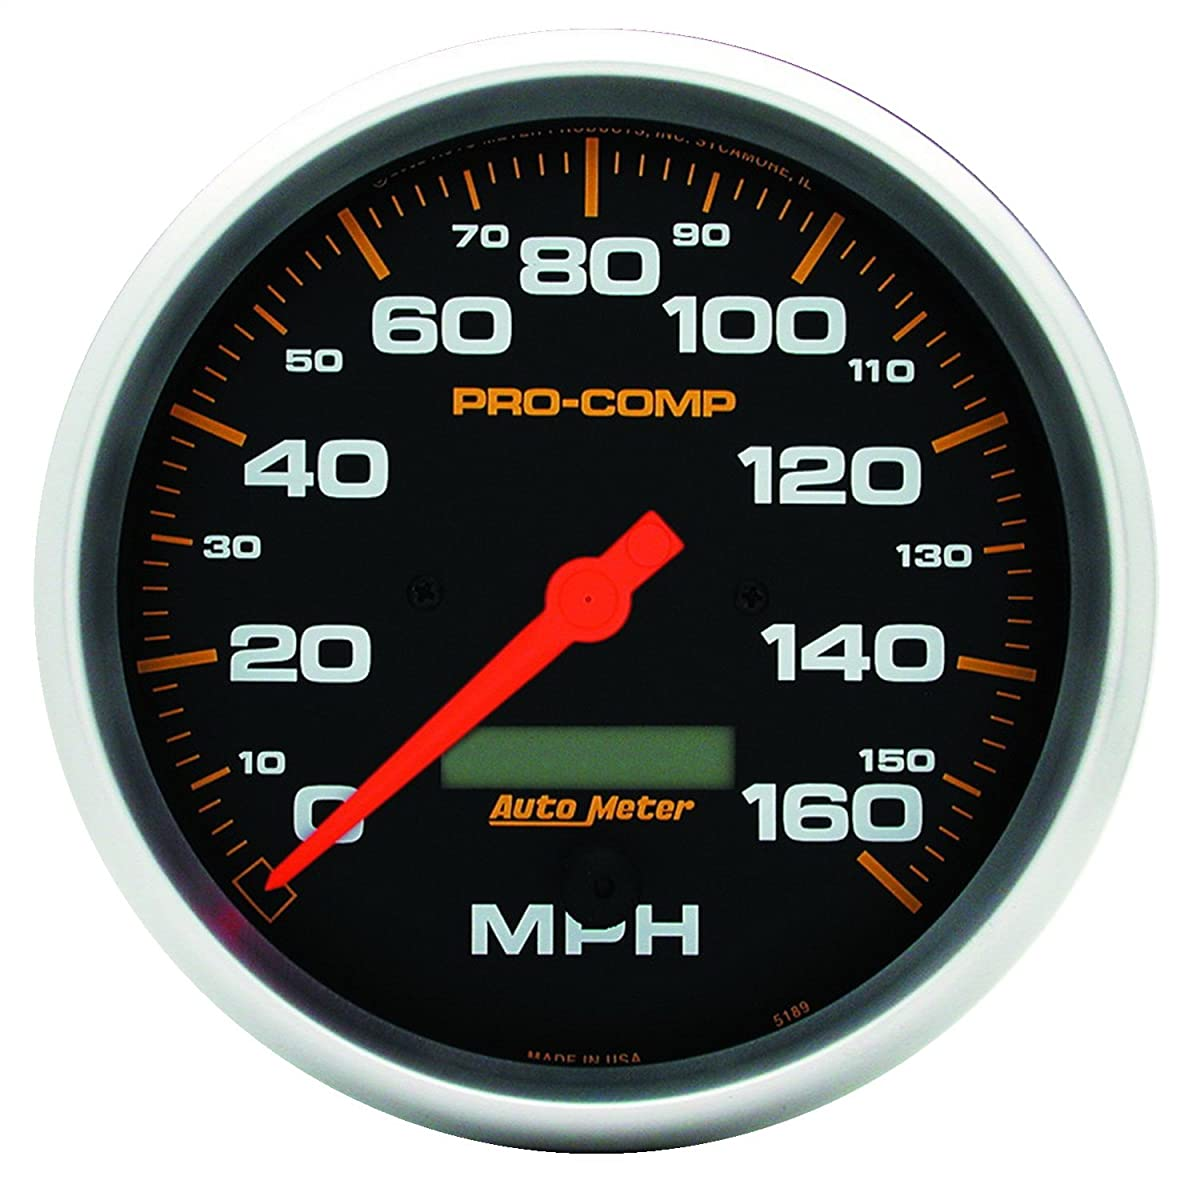 Auto Meter 5189 Pro-Comp Electric in-Dash Speedometer